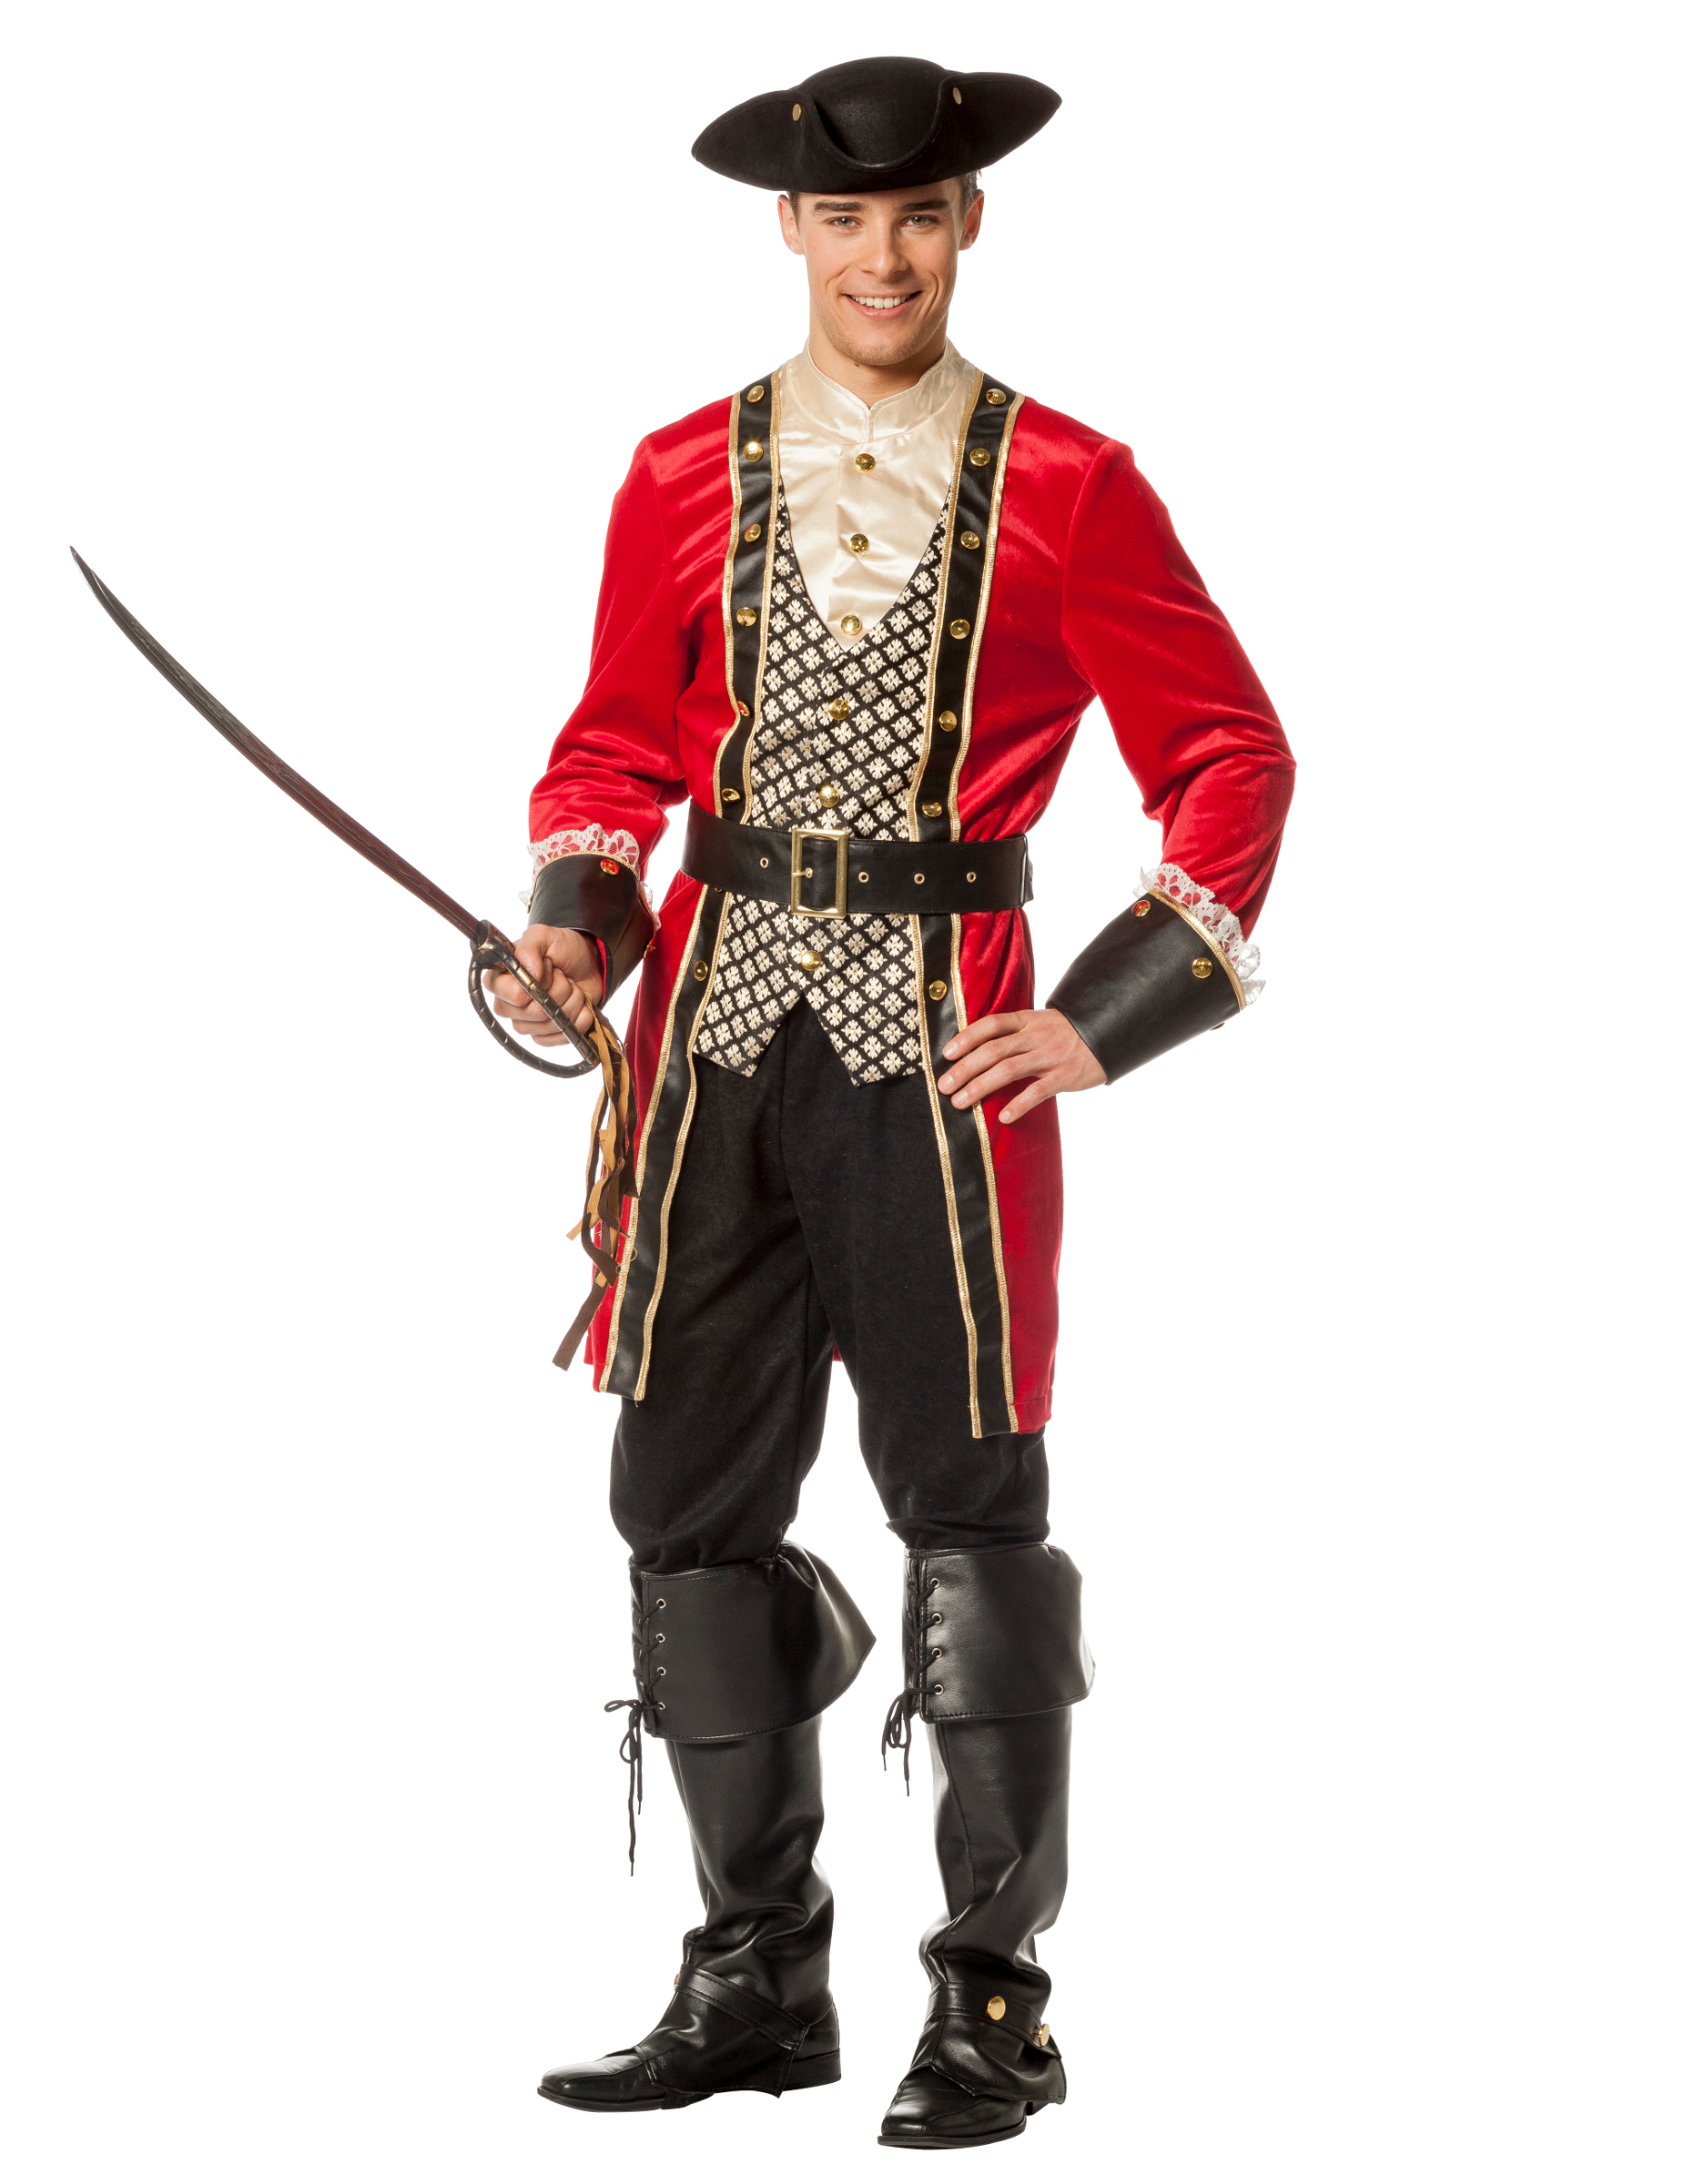 costume capitano dei pirati de luxe per uomo costumi adulti e vestiti di carnevale online vegaoo. Black Bedroom Furniture Sets. Home Design Ideas